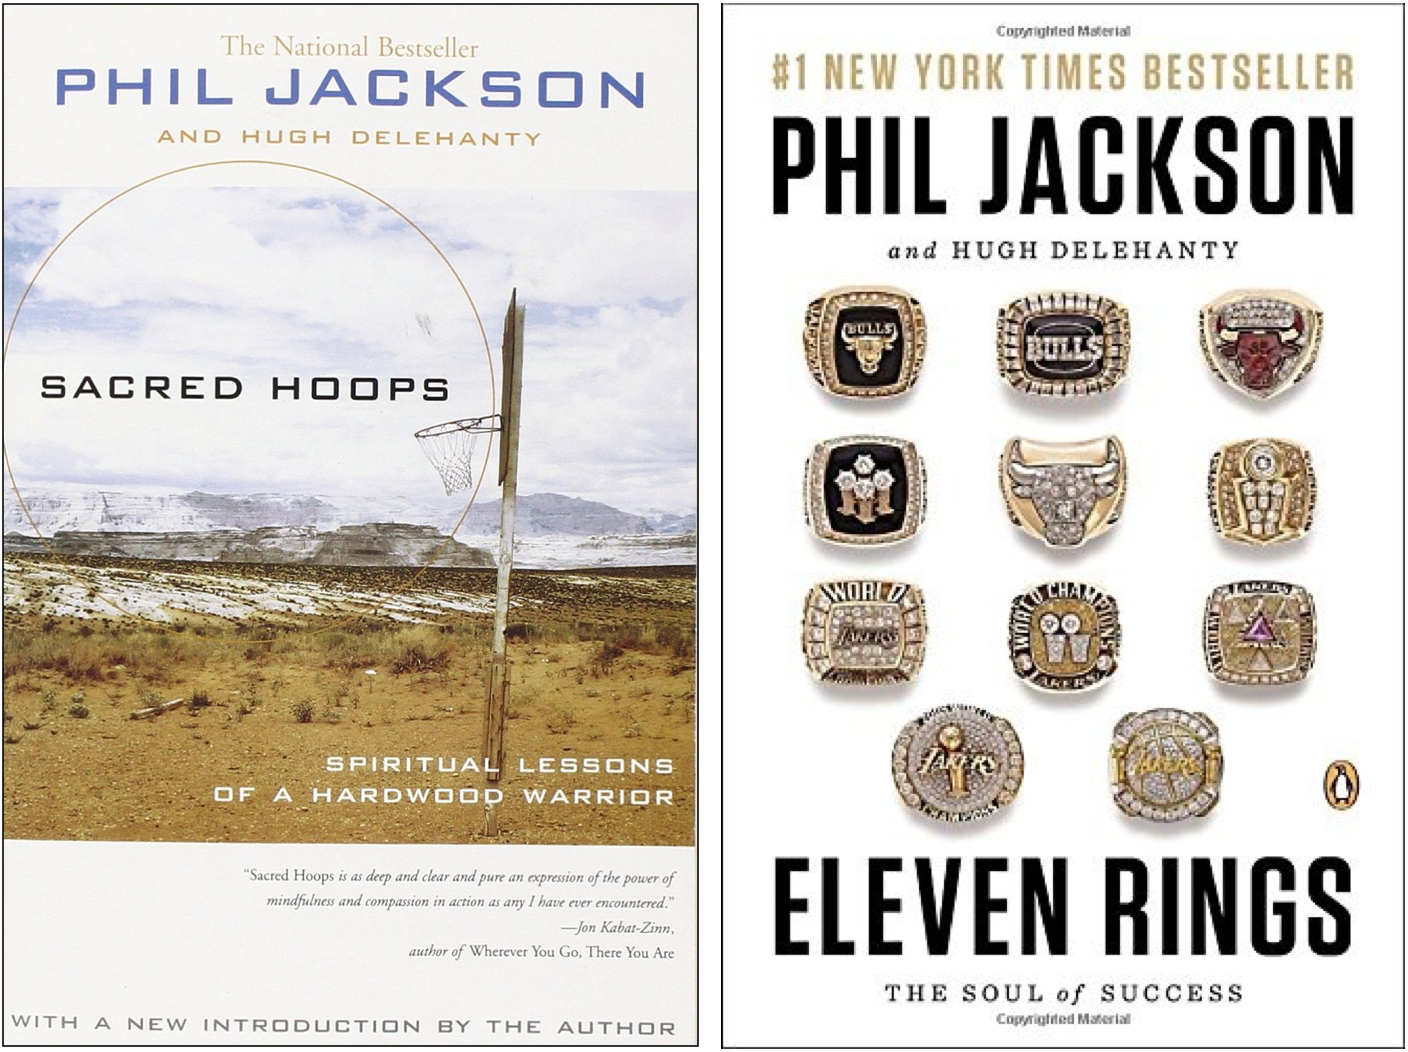 a review of sacred hoops by phil jackson Reviewed by abdelkarim hassan book: sacred hoops authors: phil jackson & hugh delehanty(2006) new york : hyperion the oakland california-based golden state warriors basketball team, recently won the nba championship of 2014/2015 season for the first time in 40 years.